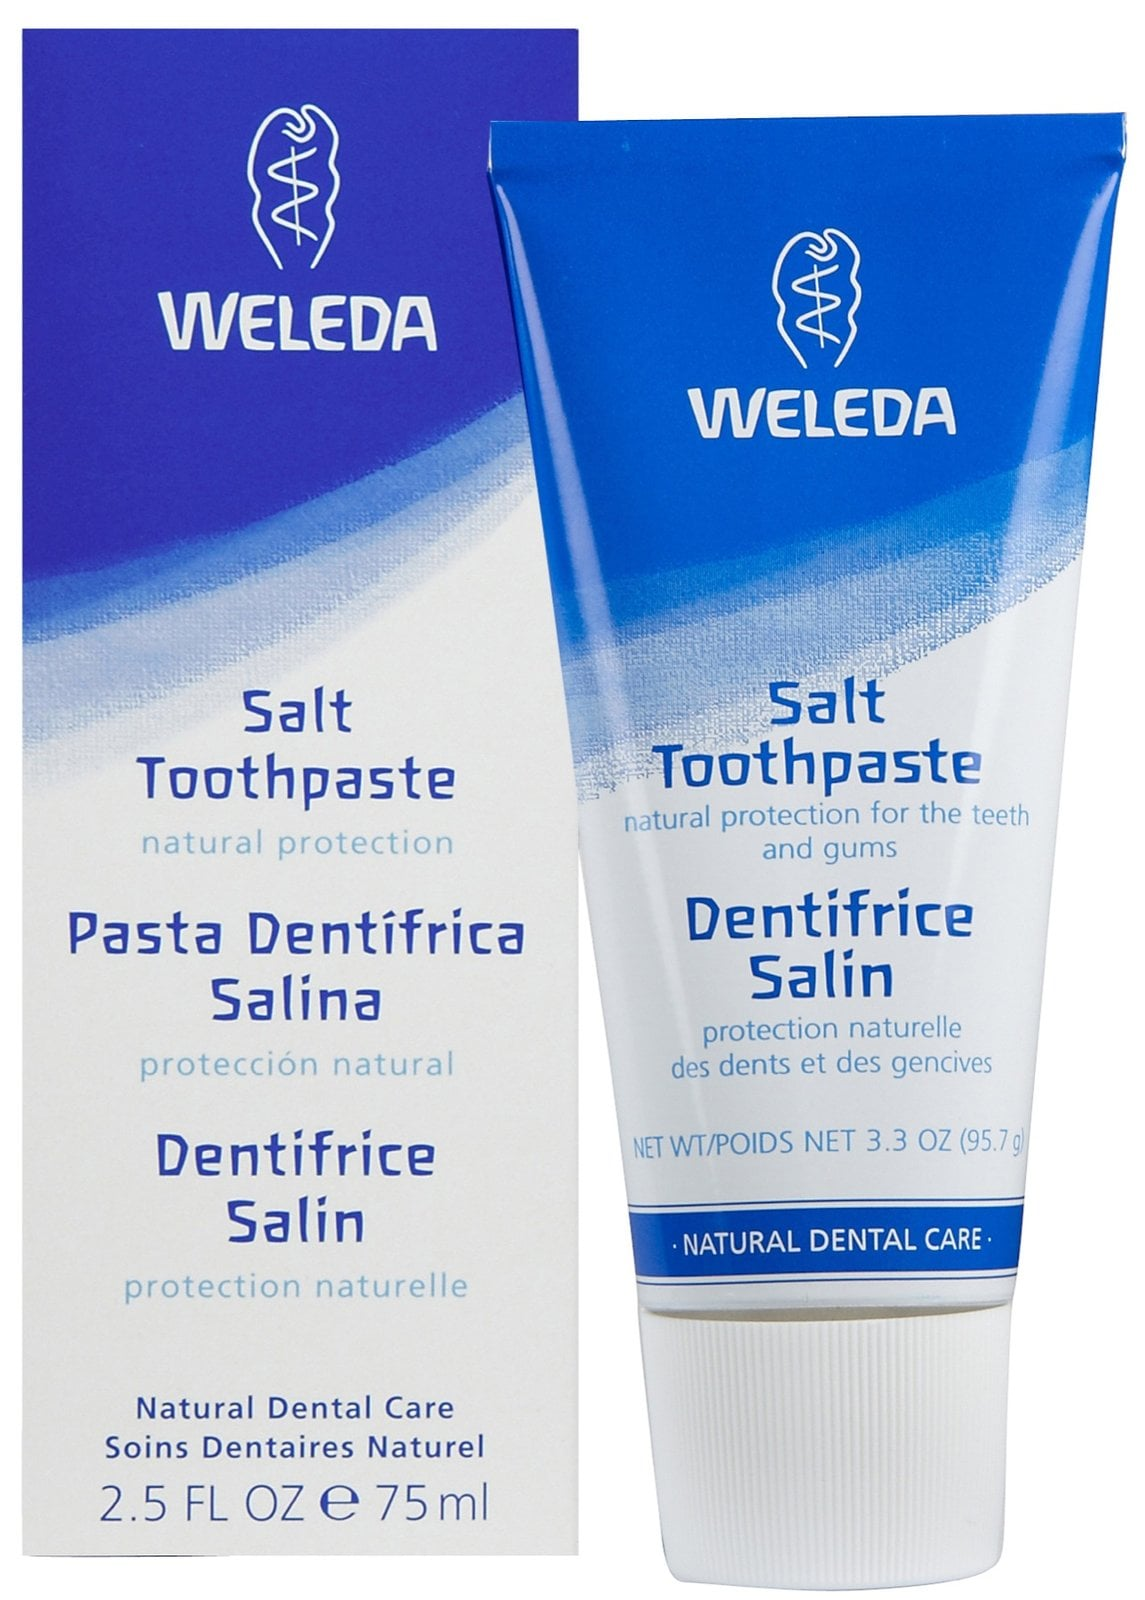 Weleda Salt Toothpaste, $995  20 Eco Buys The Natural. Community Colleges In El Paso. Automotive Telematics Systems. First Texas Bank Killeen Tx Tmj In Spanish. Development Economics Masters. Free Equifax Credit Report Online. Time Warner Eastgate Mall Diy Security Alarms. Computer Repair Naples Fl New Depression Meds. Generator Rental Chicago Loan Using Car Title